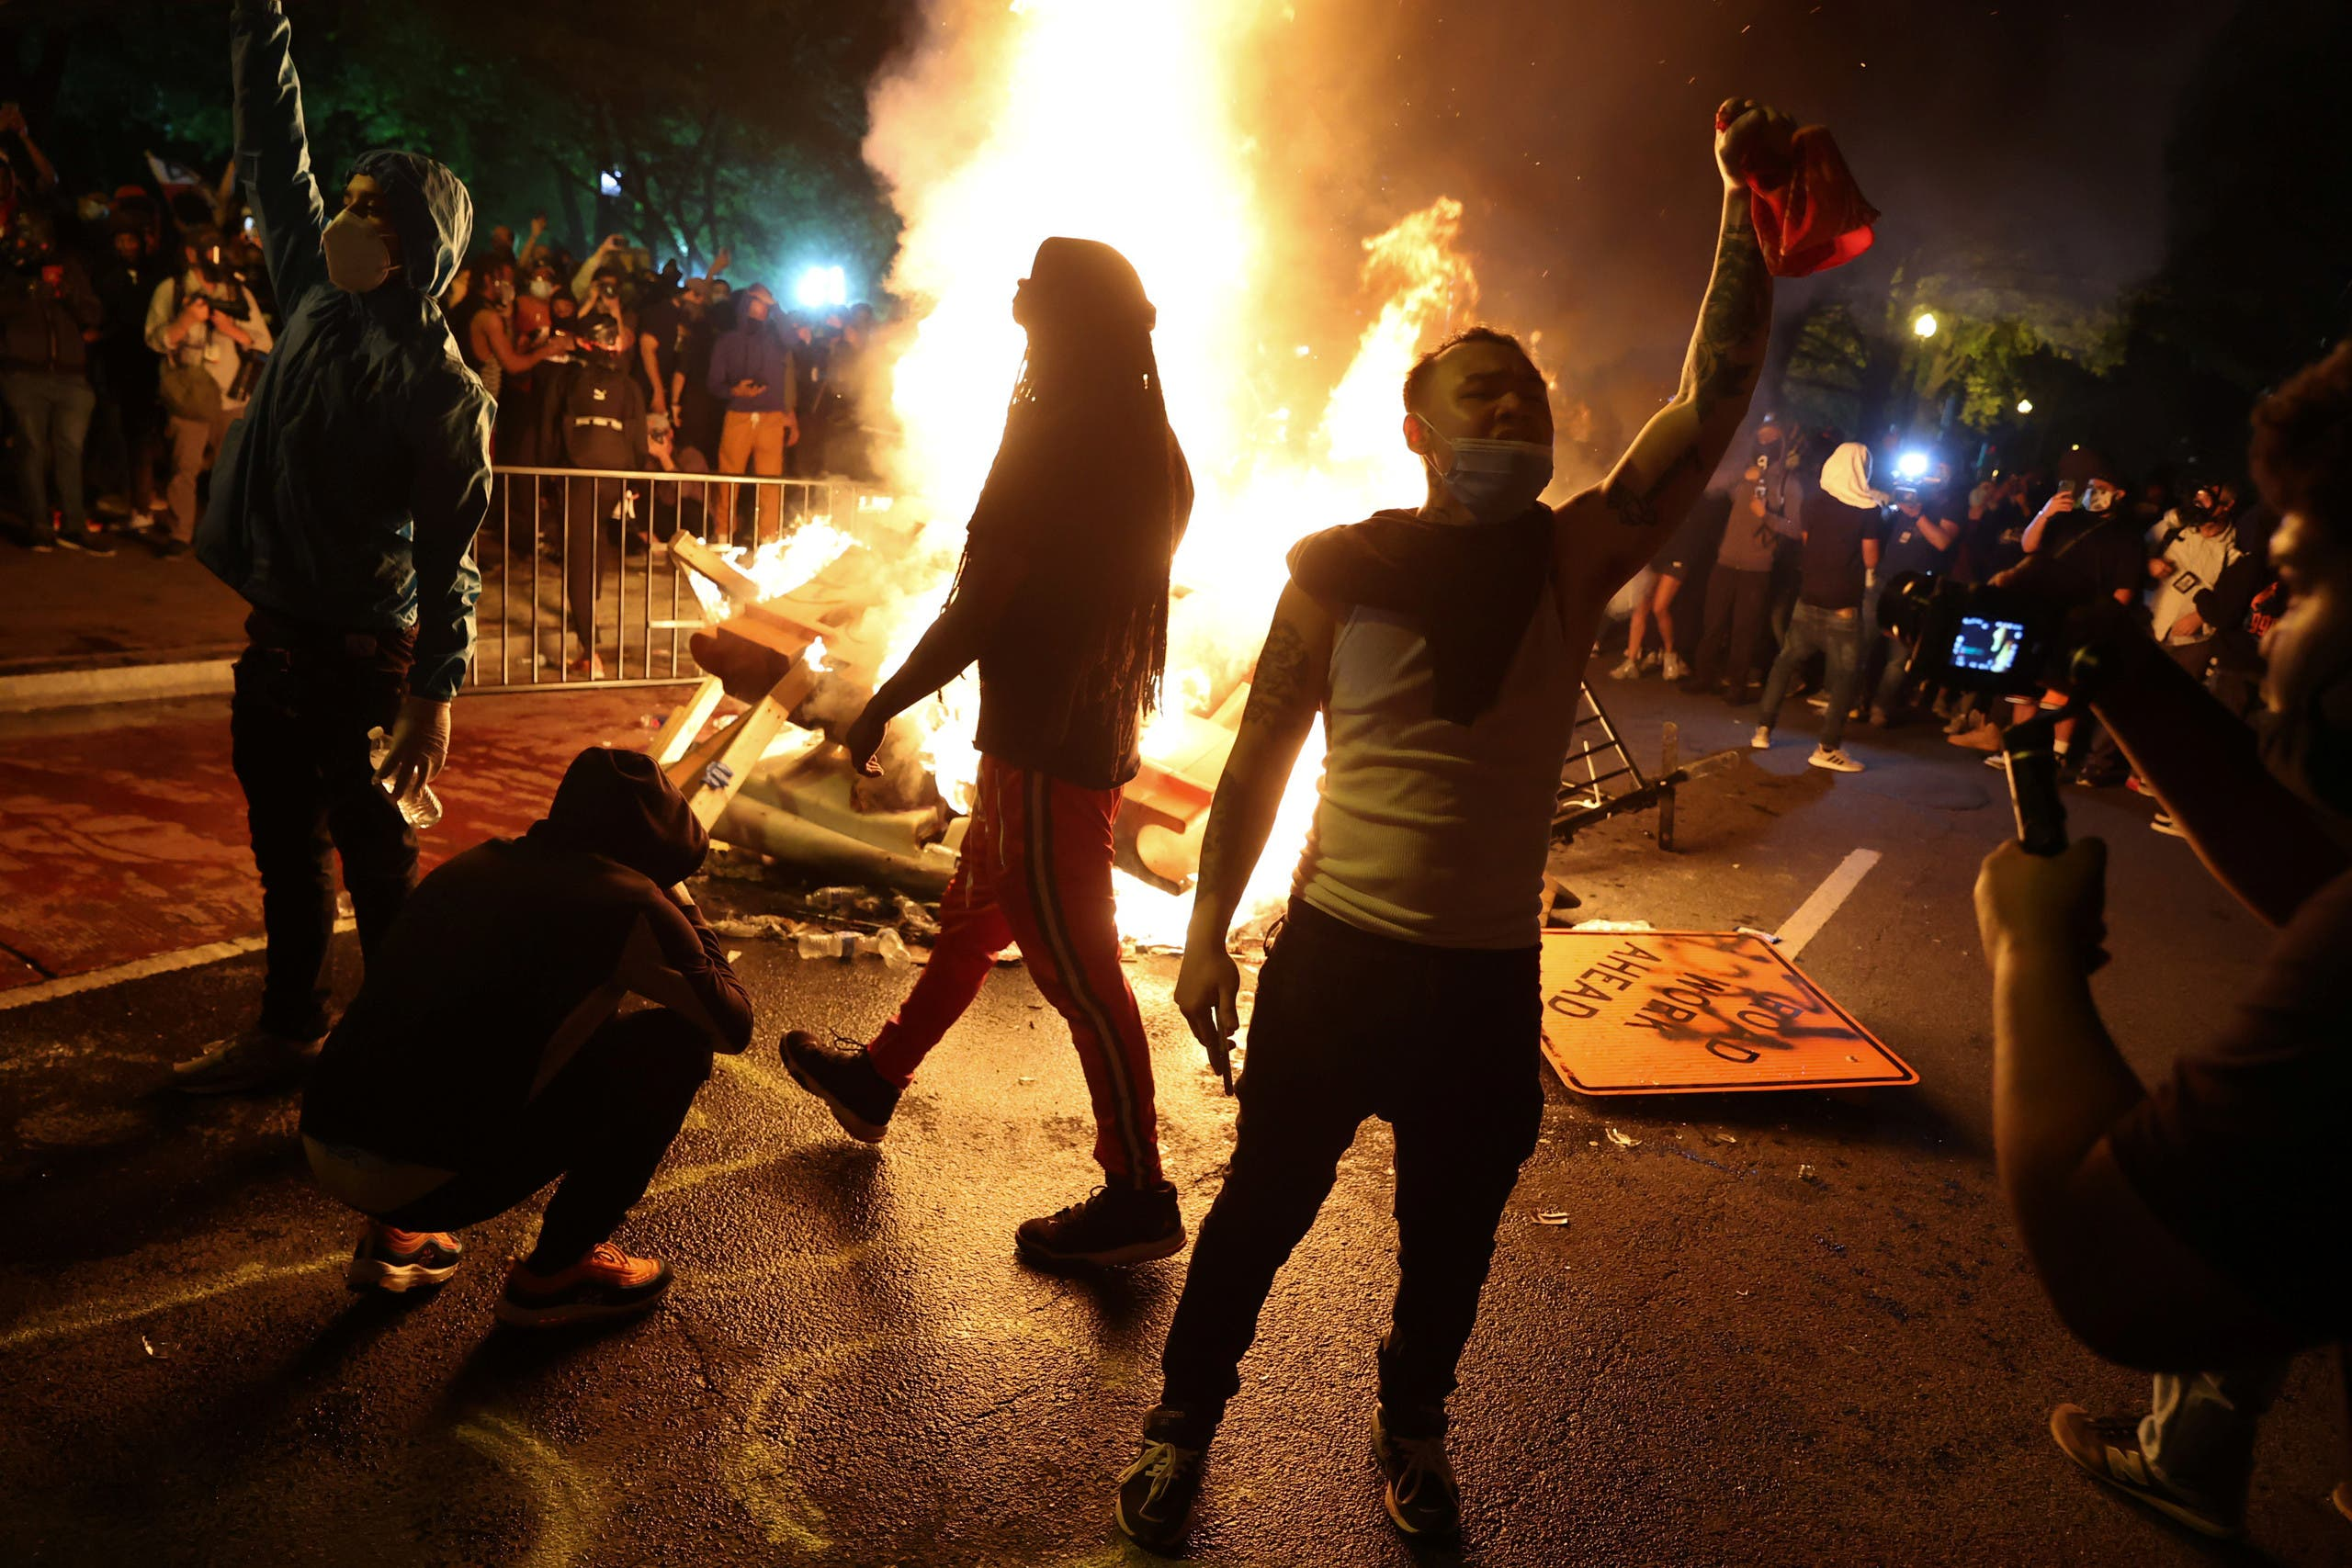 Protesters rally around a bonfire in the midst of protests against the death in Minneapolis police custody of George Floyd near the White House in Washington, U.S. May 31, 2020. (Reuters)